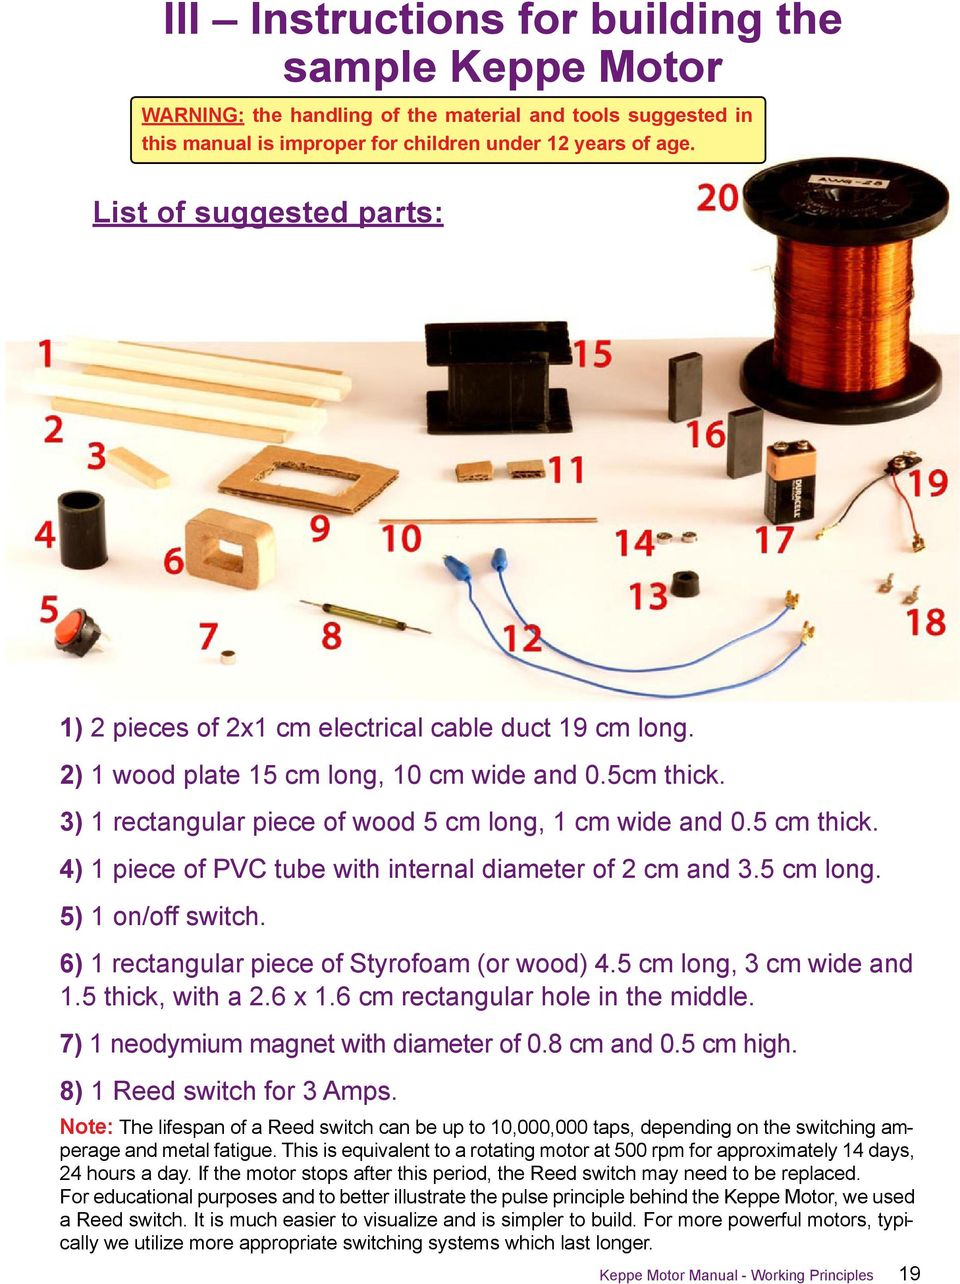 5 cm thick. 4) 1 piece of PVC tube with internal diameter of 2 cm and 3.5 cm long. 5) 1 on/off switch. 6) 1 rectangular piece of Styrofoam (or wood) 4.5 cm long, 3 cm wide and 1.5 thick, with a 2.